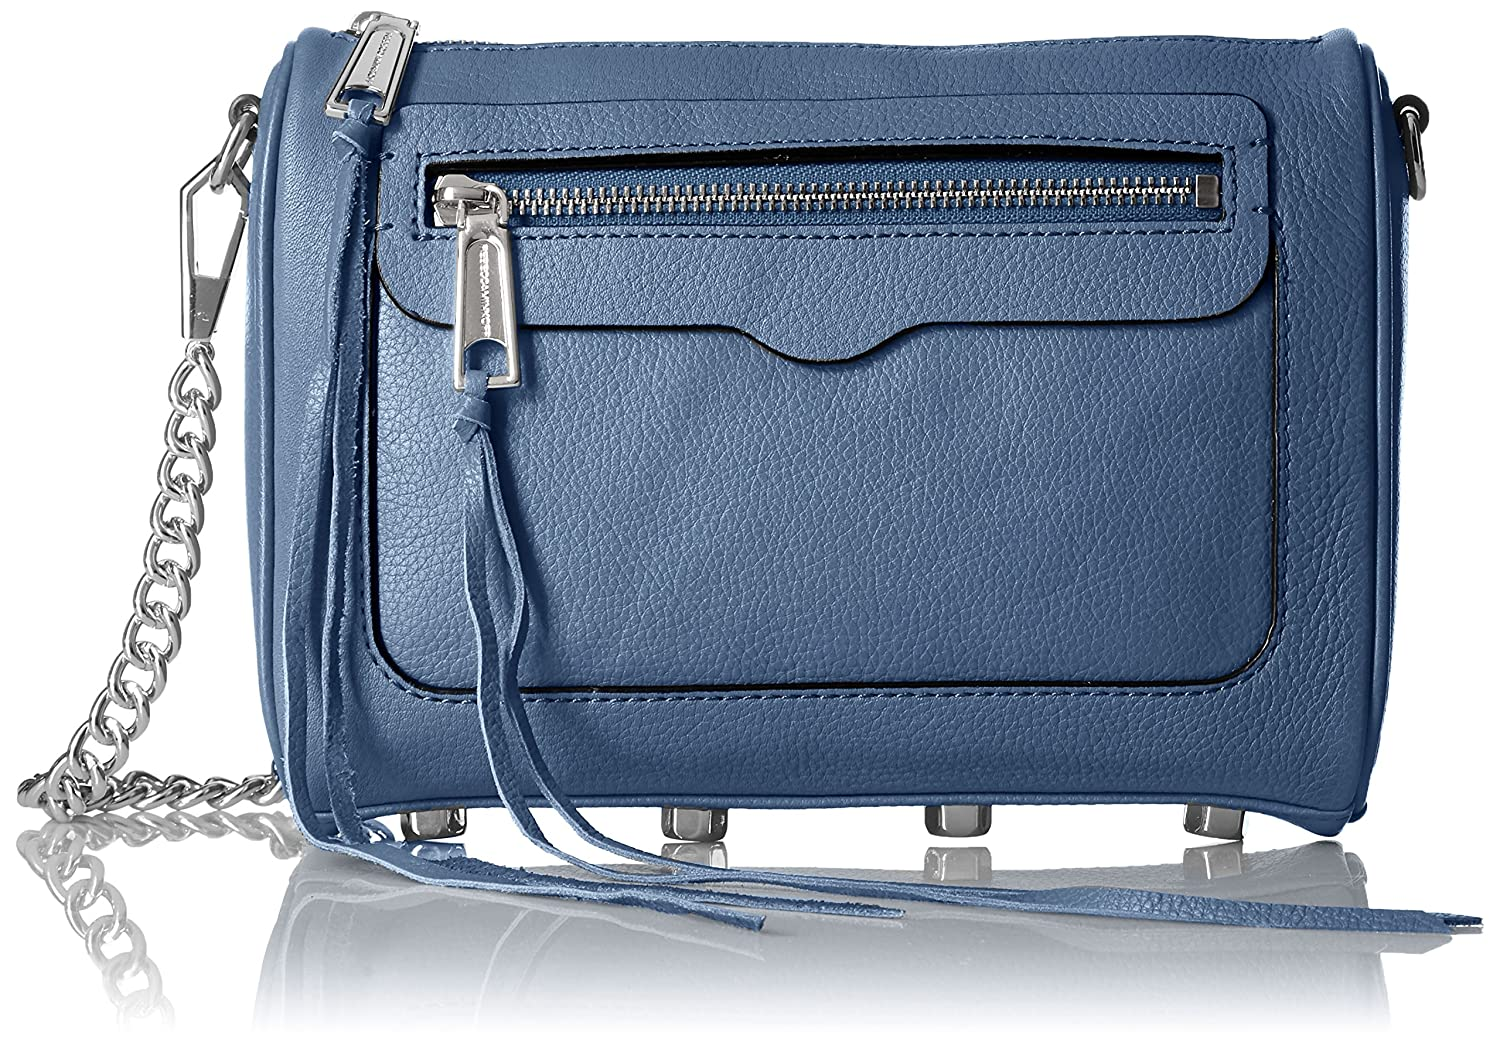 AVERY CROSSBODY, DEEP DENIM Rebecca Minkoff CH16ECLX10